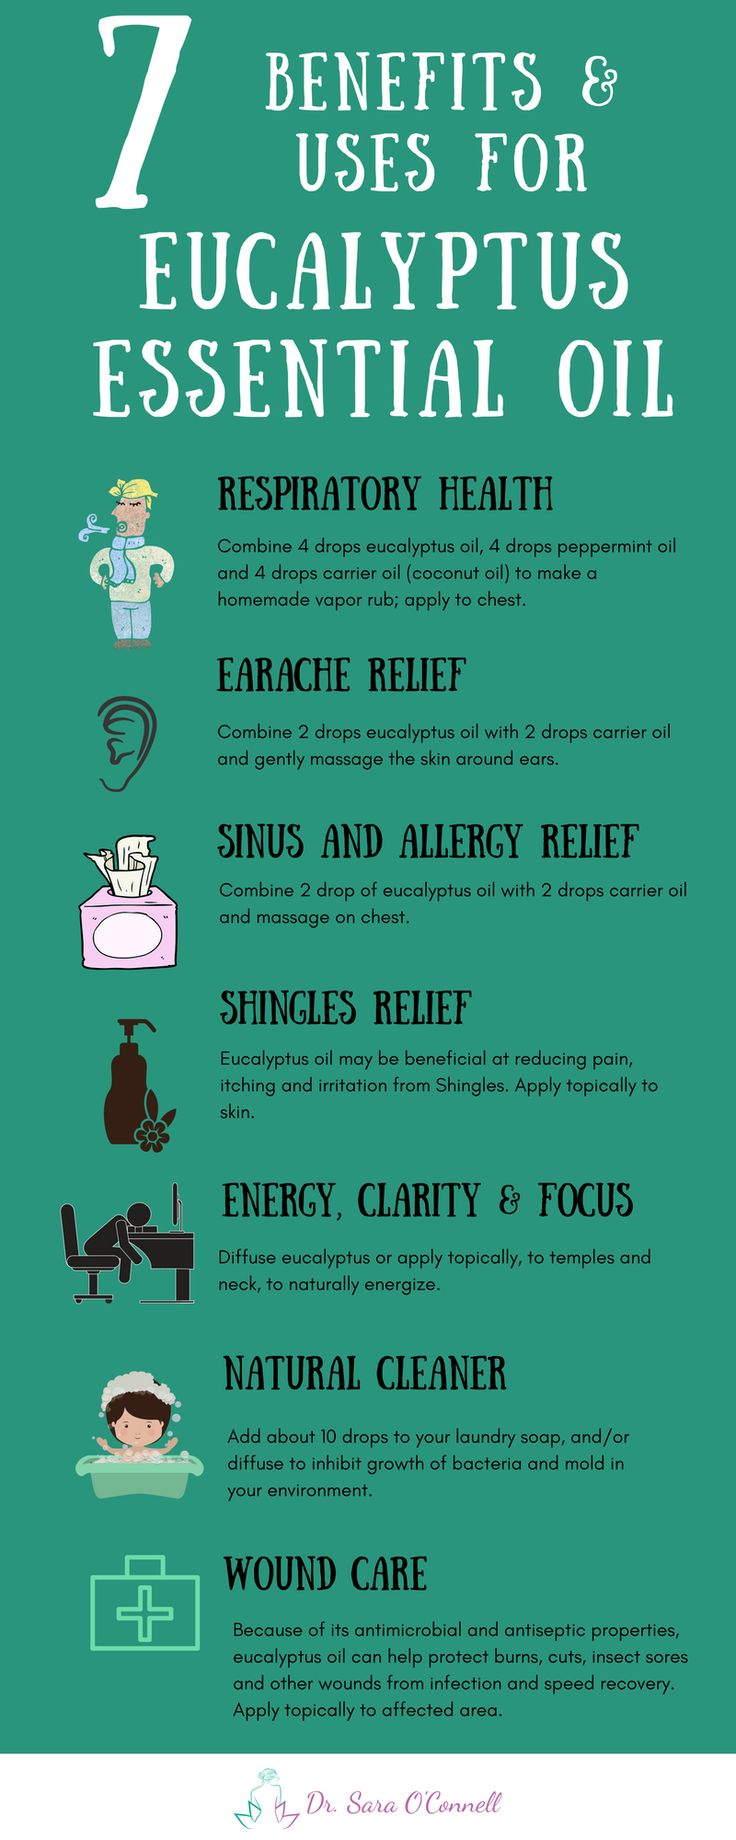 Eucalyptus essential oil benefits and uses. What you need to know about eucalyptus oil and how to use it for natural health concerns and remedies to help boost respiratory and skin health. Click the image for more and repin to share with your loved ones!